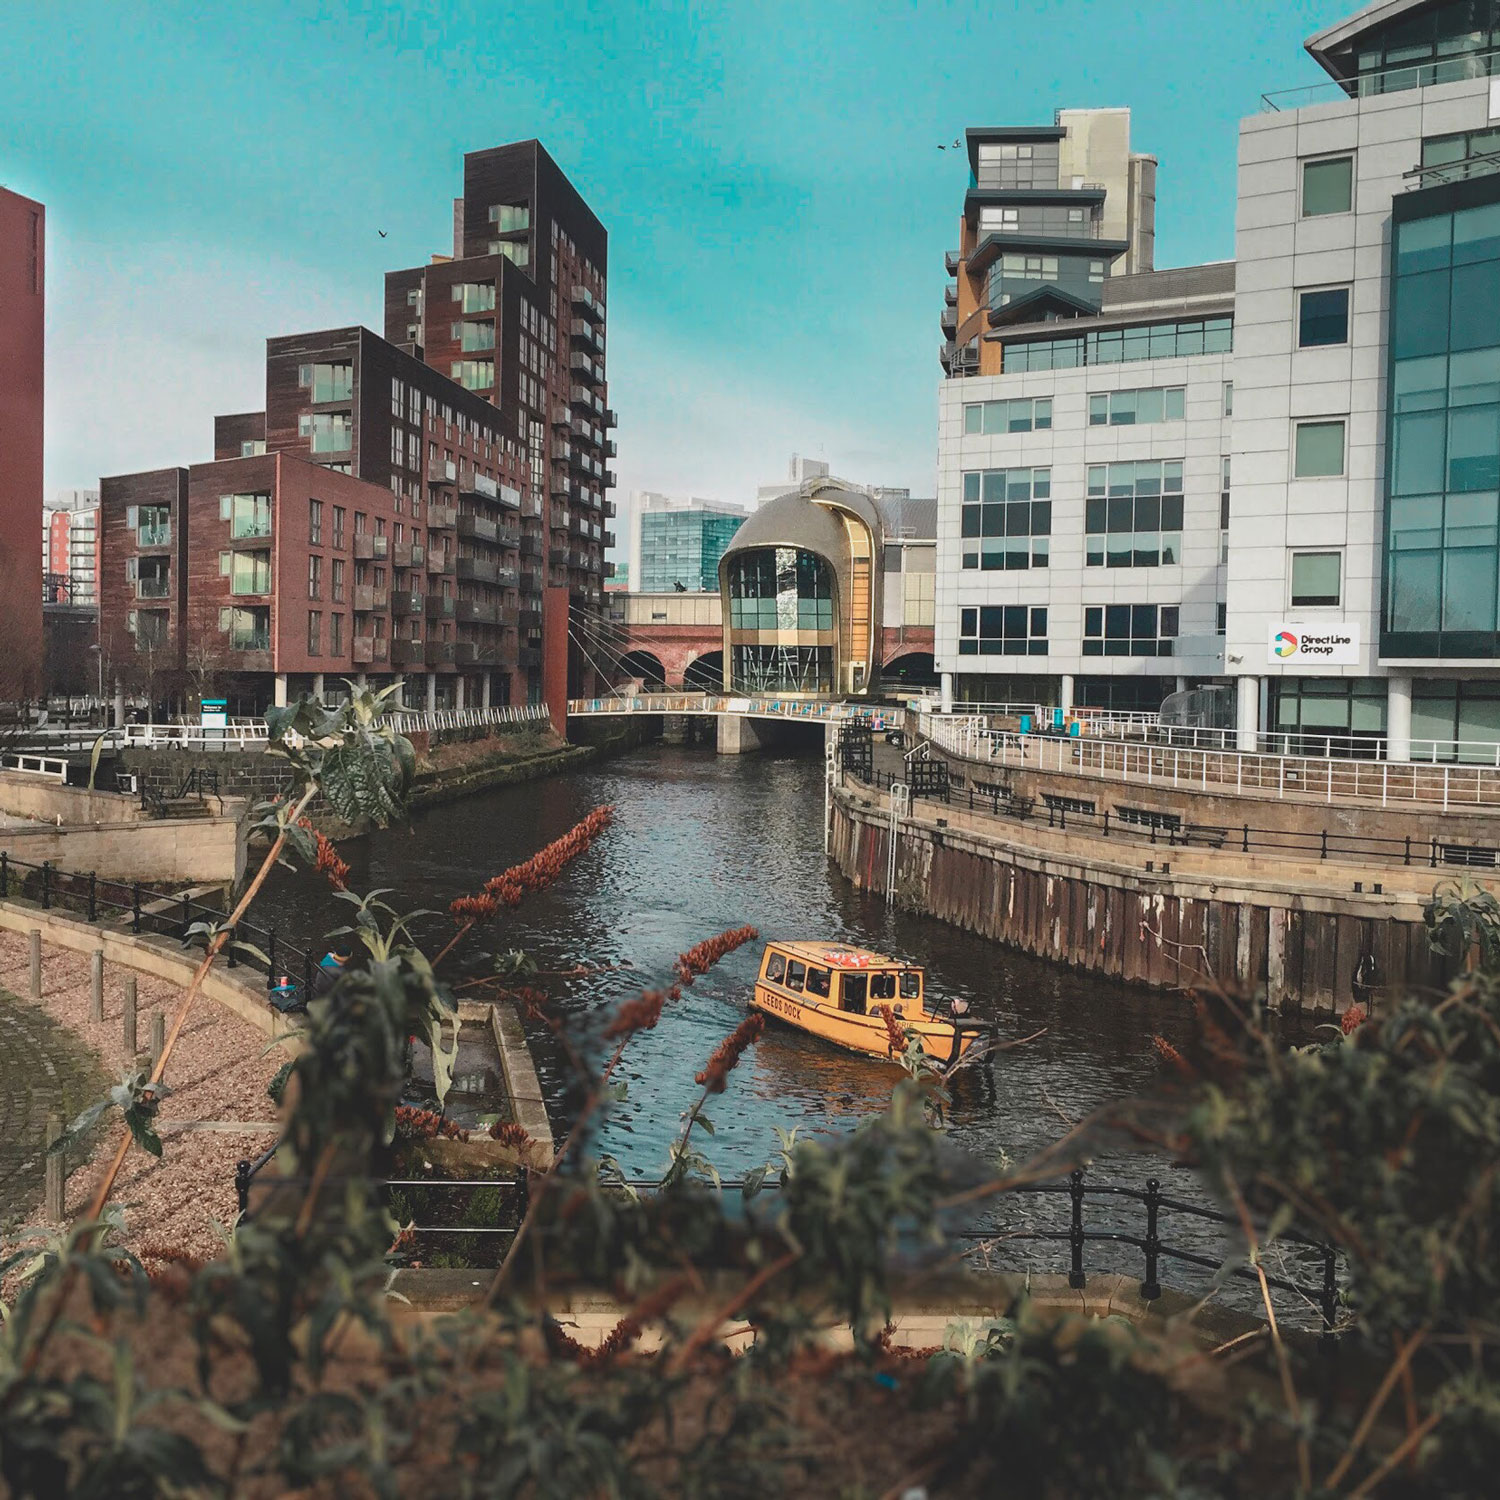 The Bi'an Leeds City Guide